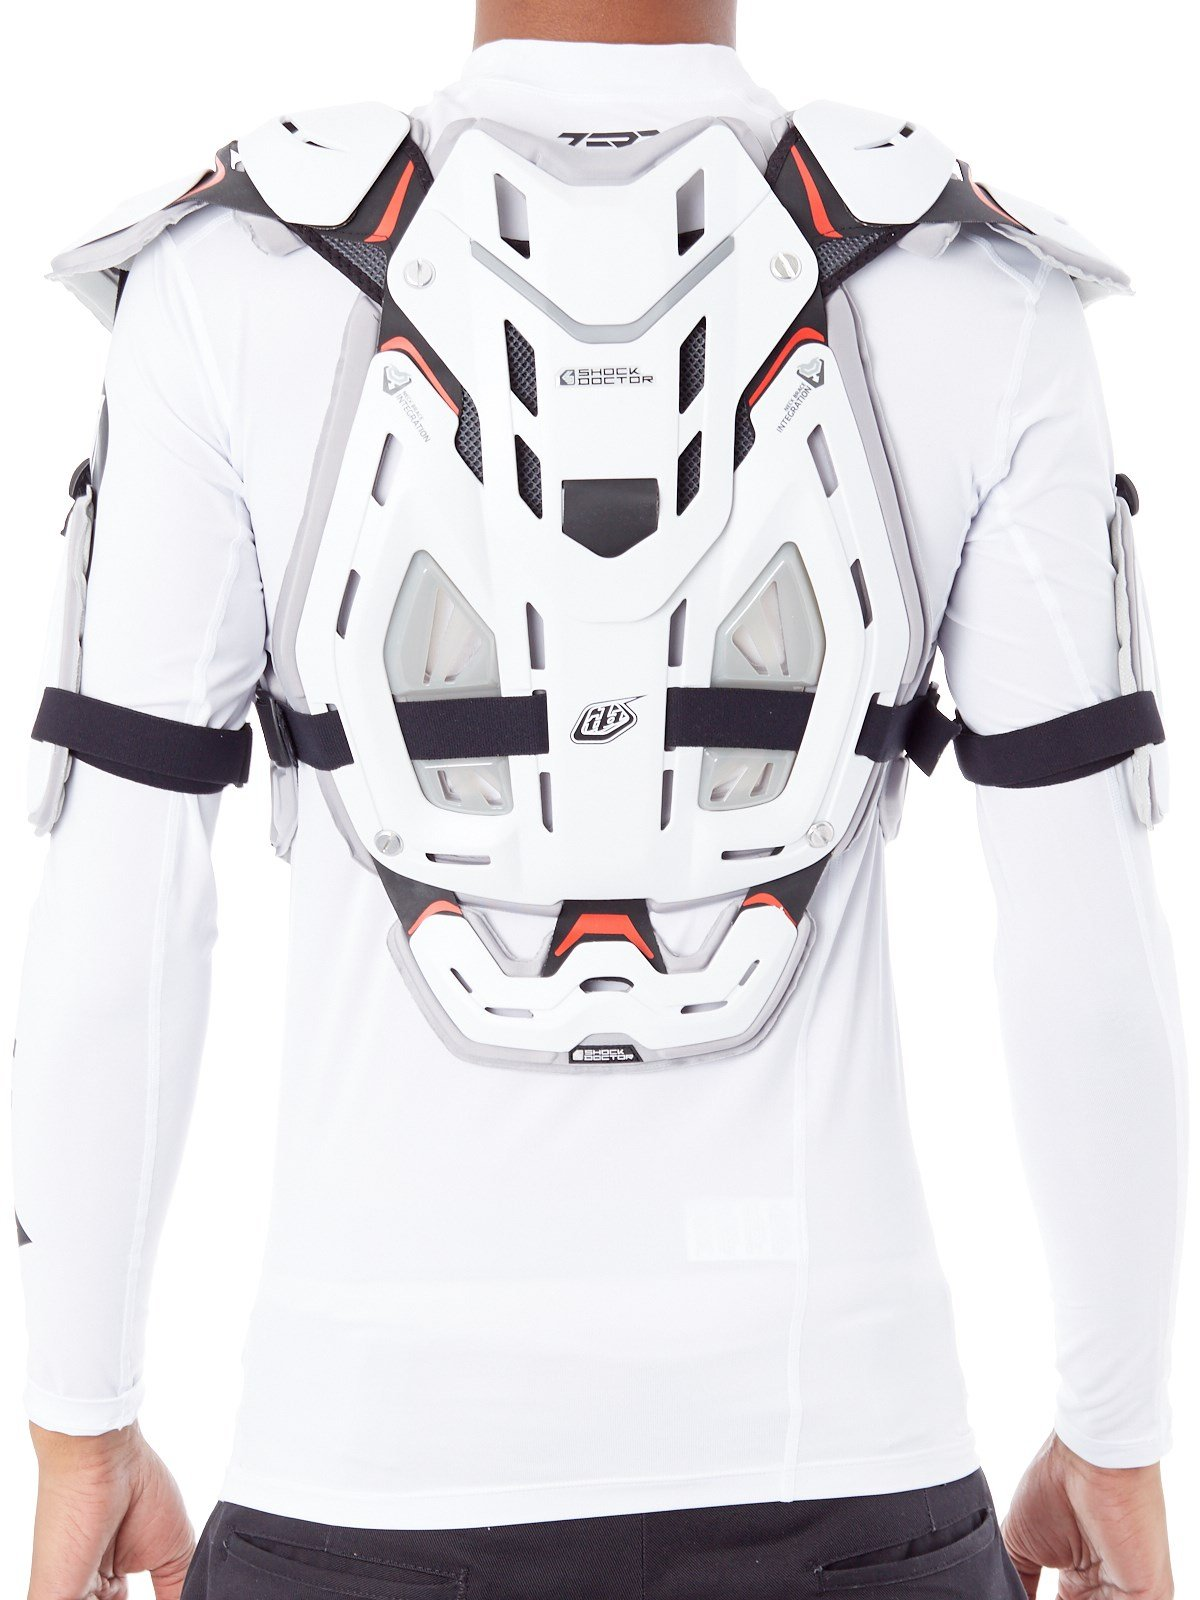 Troy Lee Designs 5955 Chest Body Guard-White-L by Troy Lee Designs (Image #3)